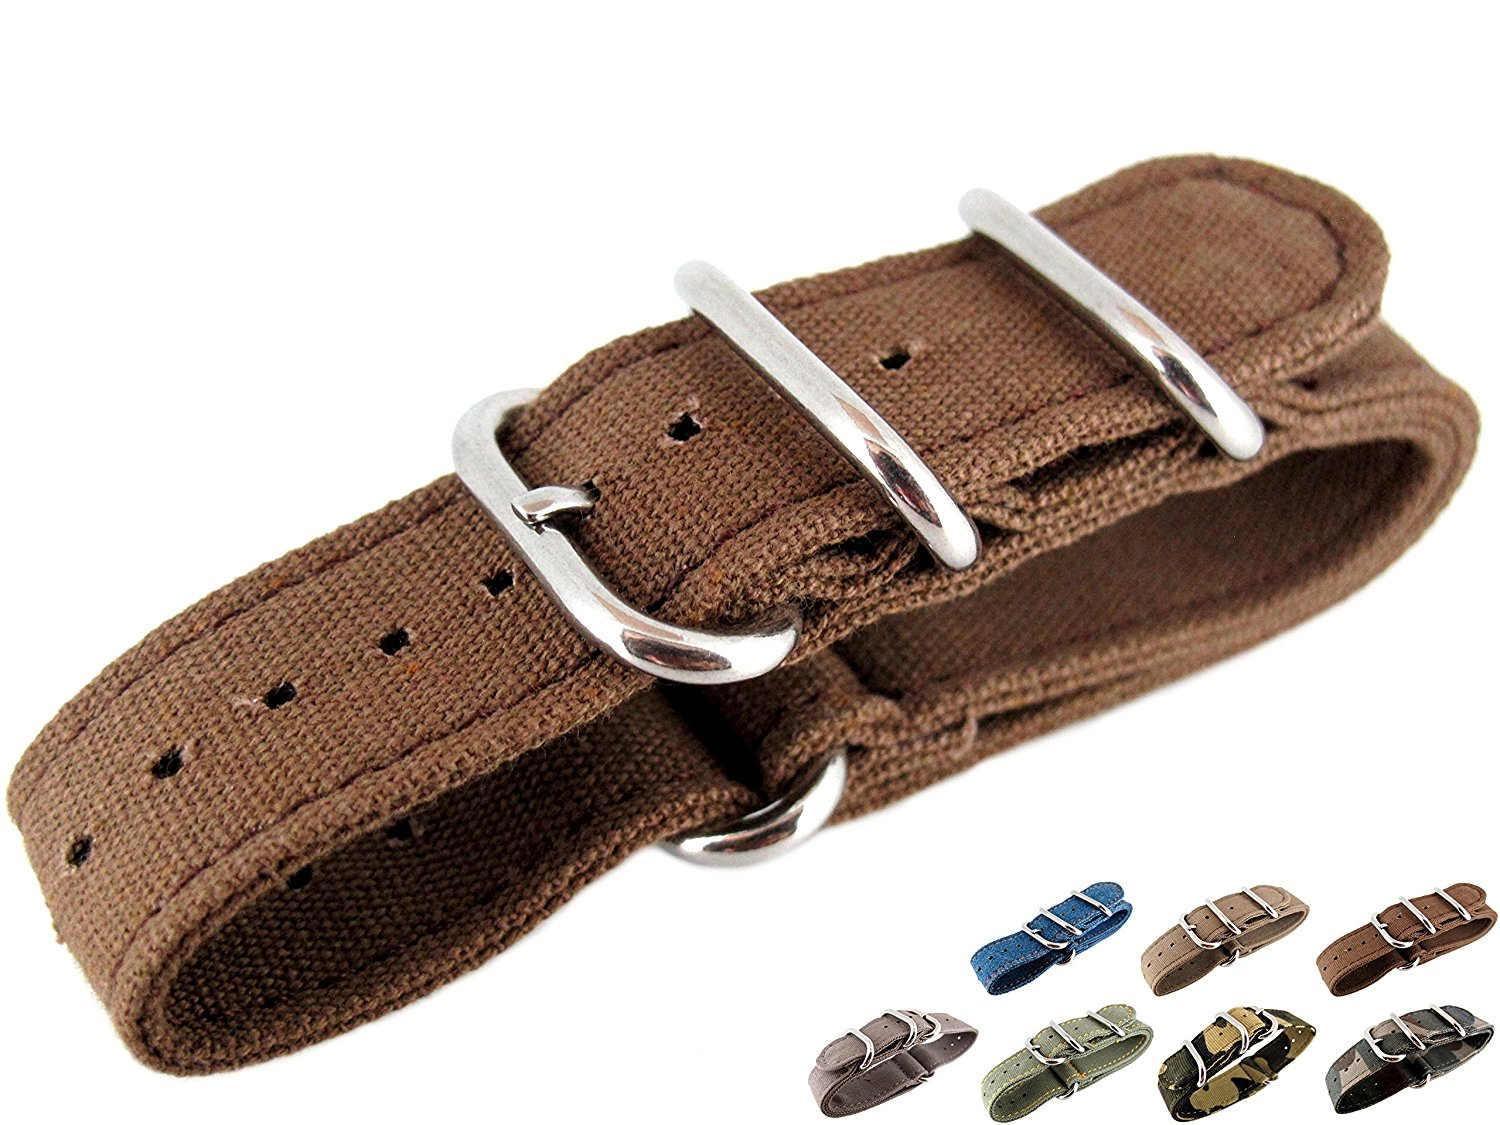 20mm Watch Strap Zulu Nato Band Watchband Premium Canvas Brown Sports Military Army 3 Solid Polishing Round Ring Buckle Wrist Length 150 To 220mm 1.8mm Thickness Fashion Trend NYS111 JRRS7777